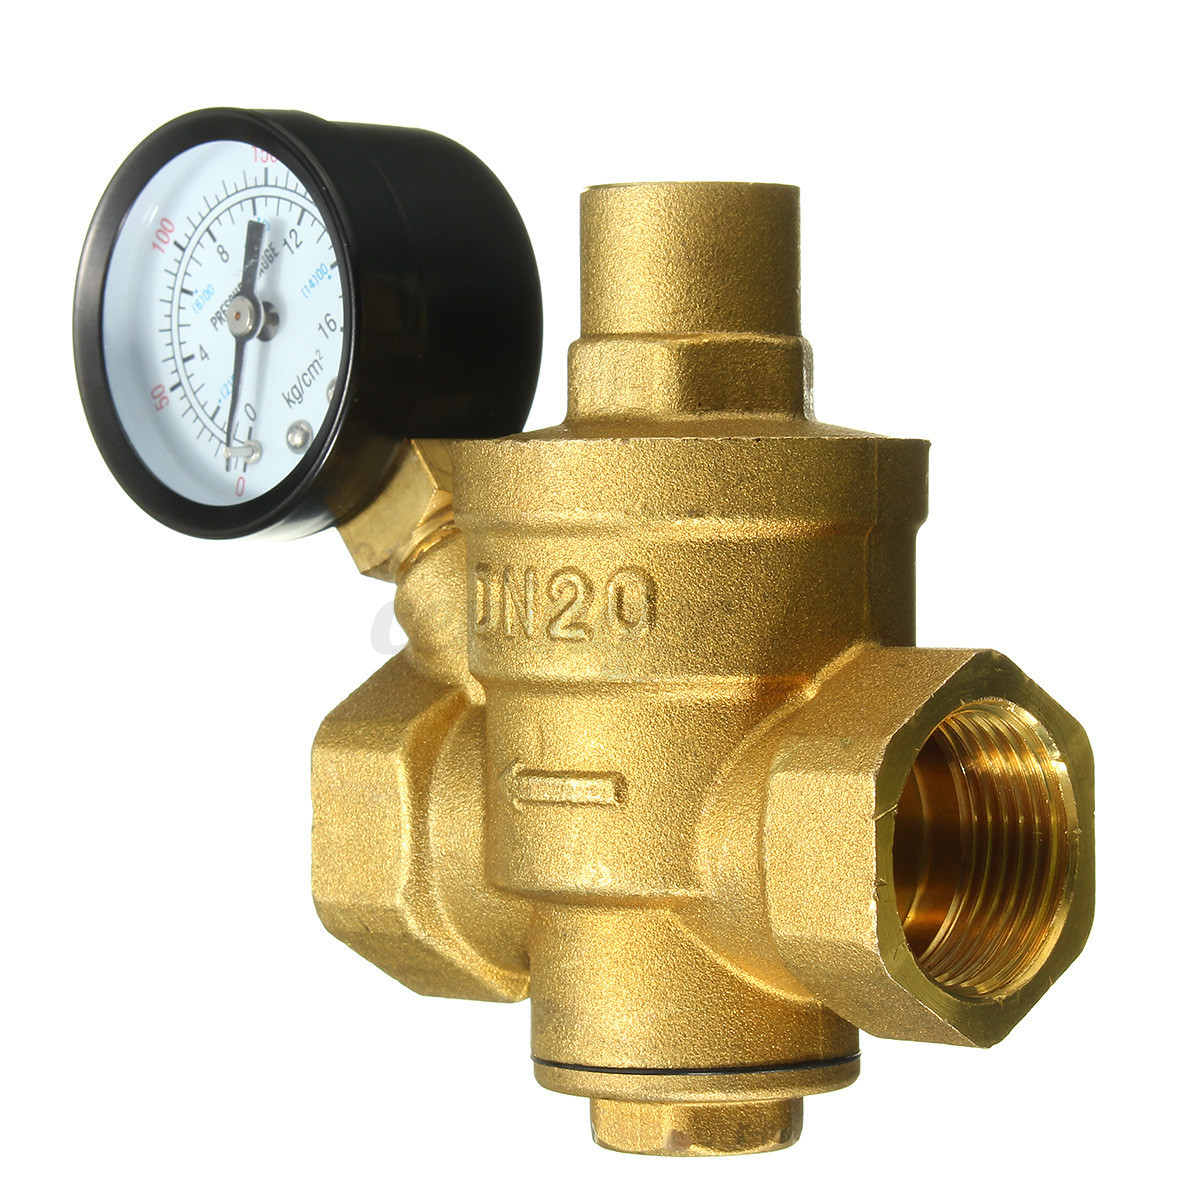 dn20 3 4 39 39 bspp brass water pressure reducing valve with gauge flow adjustable. Black Bedroom Furniture Sets. Home Design Ideas